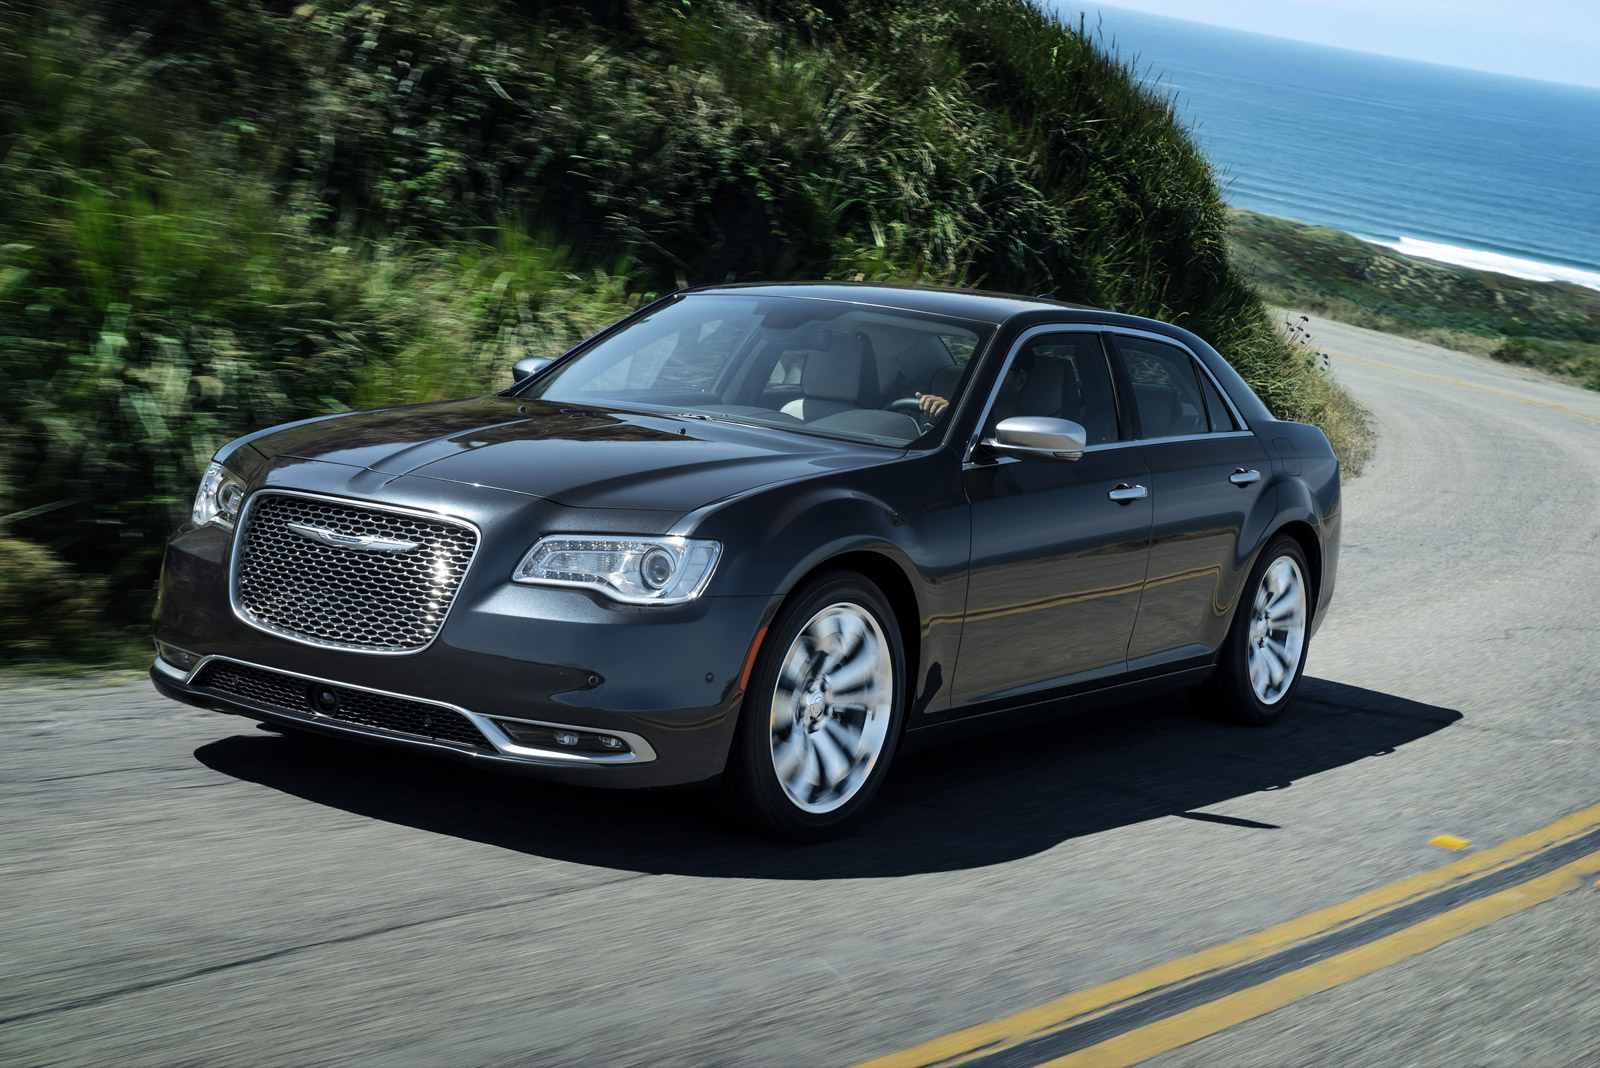 Chrysler 300s 2017 Price >> New and Used Chrysler 300: Prices, Photos, Reviews, Specs - The Car Connection